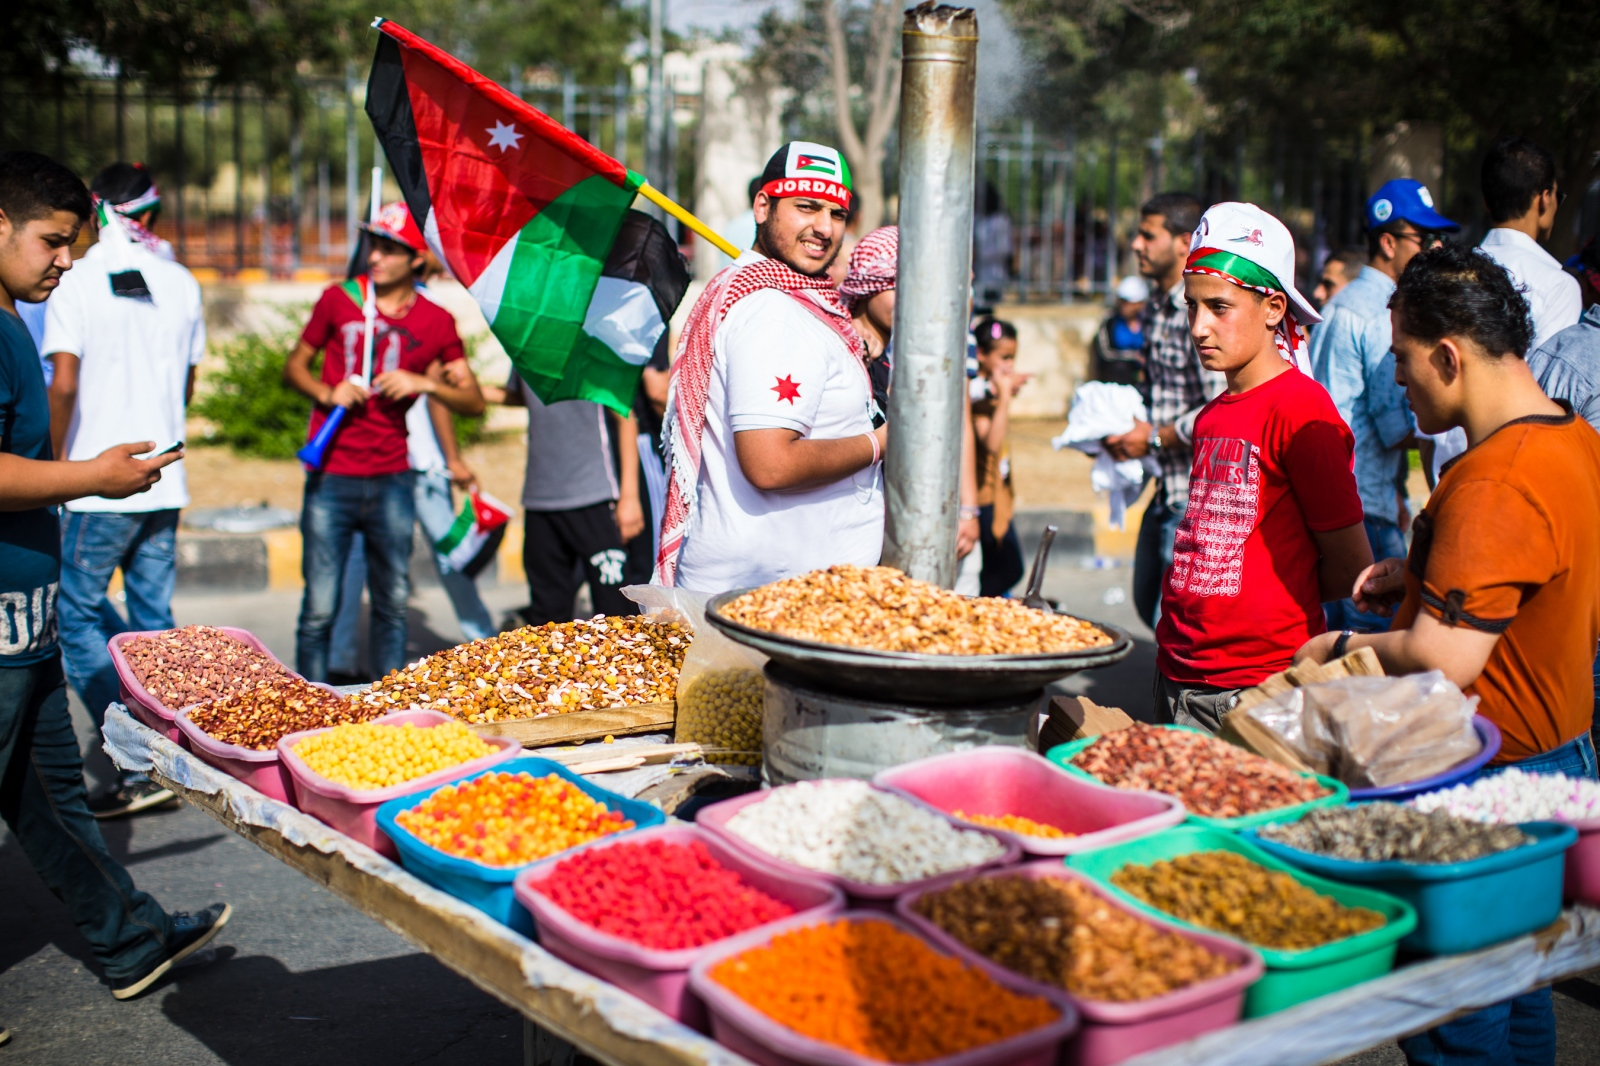 A Jordanian boy sells roasted nuts on the street outside King Hussein Park in Amman, Jordan, as crowds gathered to watch an air show and celebrate the 100th anniversary of the Great Arab Revolt on June 3, 2016.